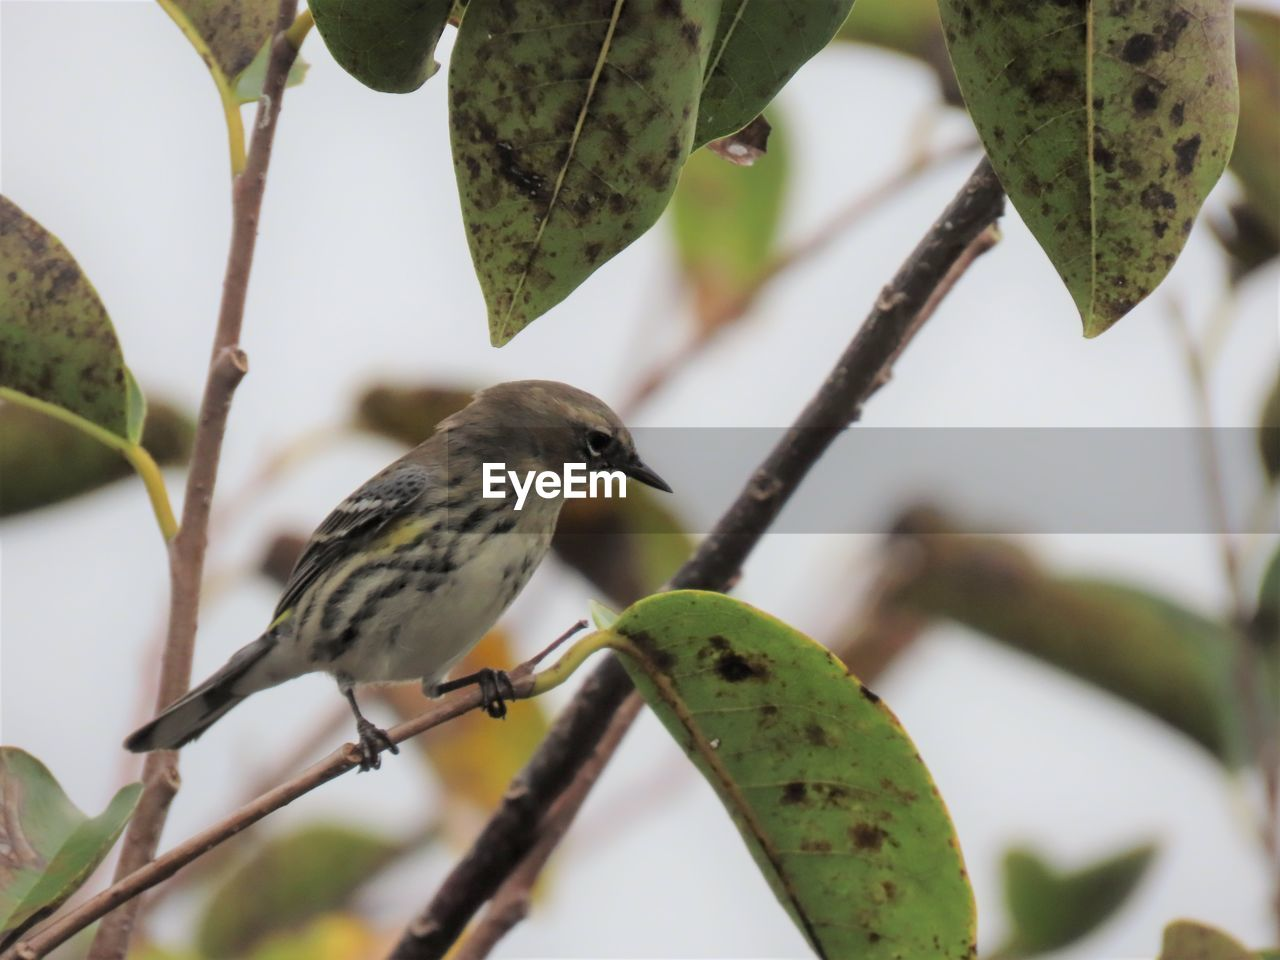 animal themes, vertebrate, bird, animal wildlife, animal, animals in the wild, plant, perching, branch, plant part, tree, leaf, one animal, no people, focus on foreground, nature, close-up, day, green color, growth, outdoors